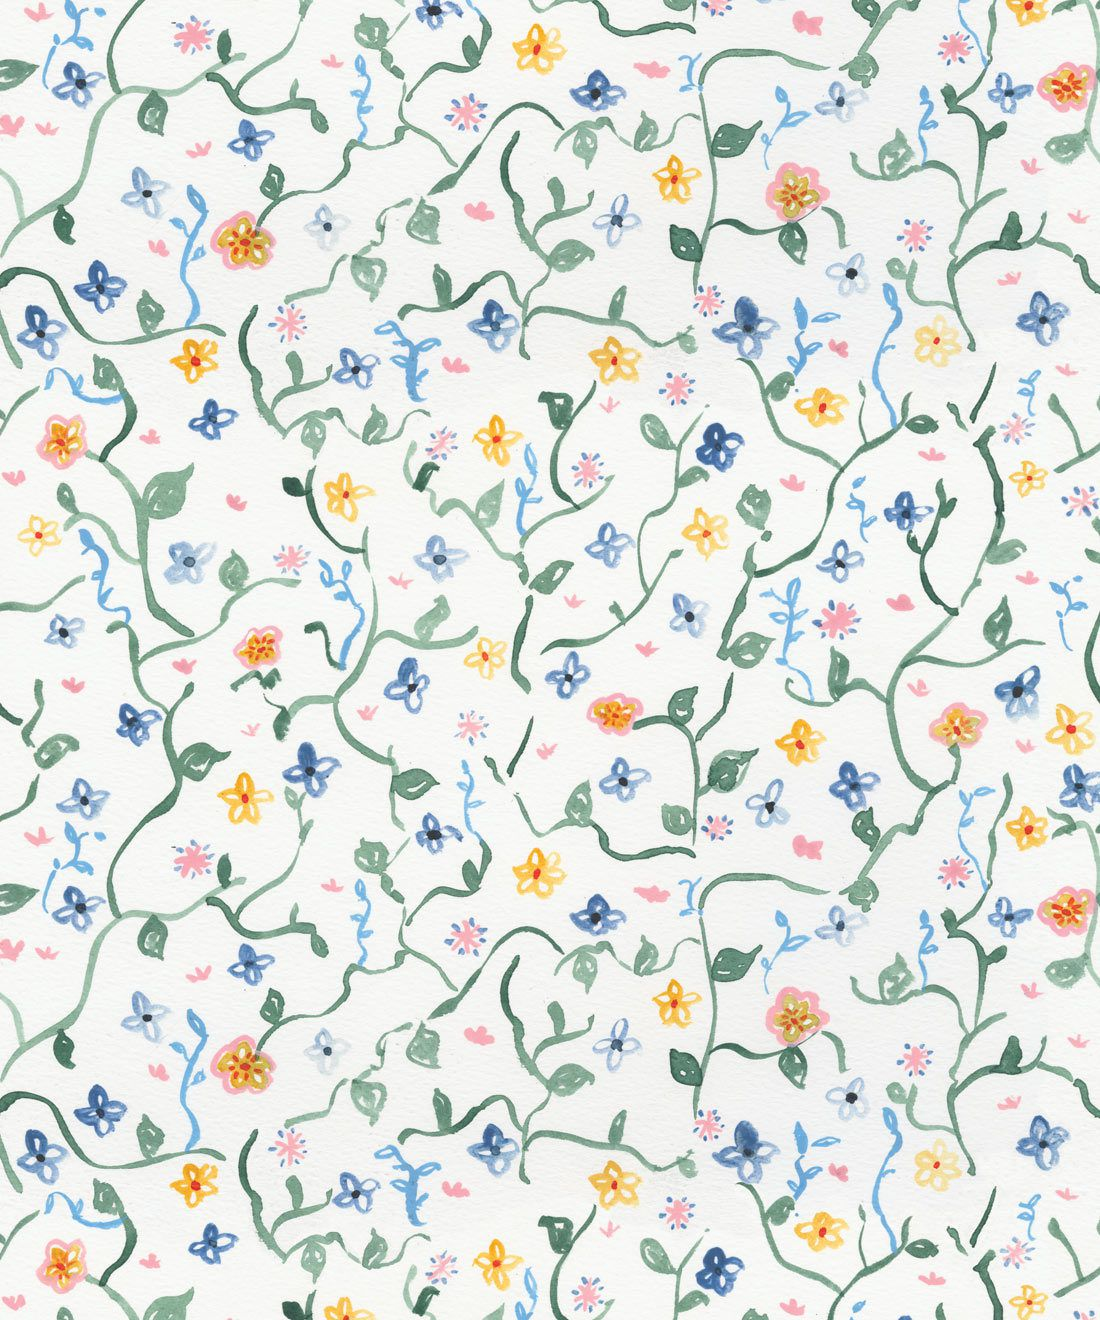 Wild Garden • Dainty Floral Wallpaper • Milton & King Europe • Georgia MacMillan